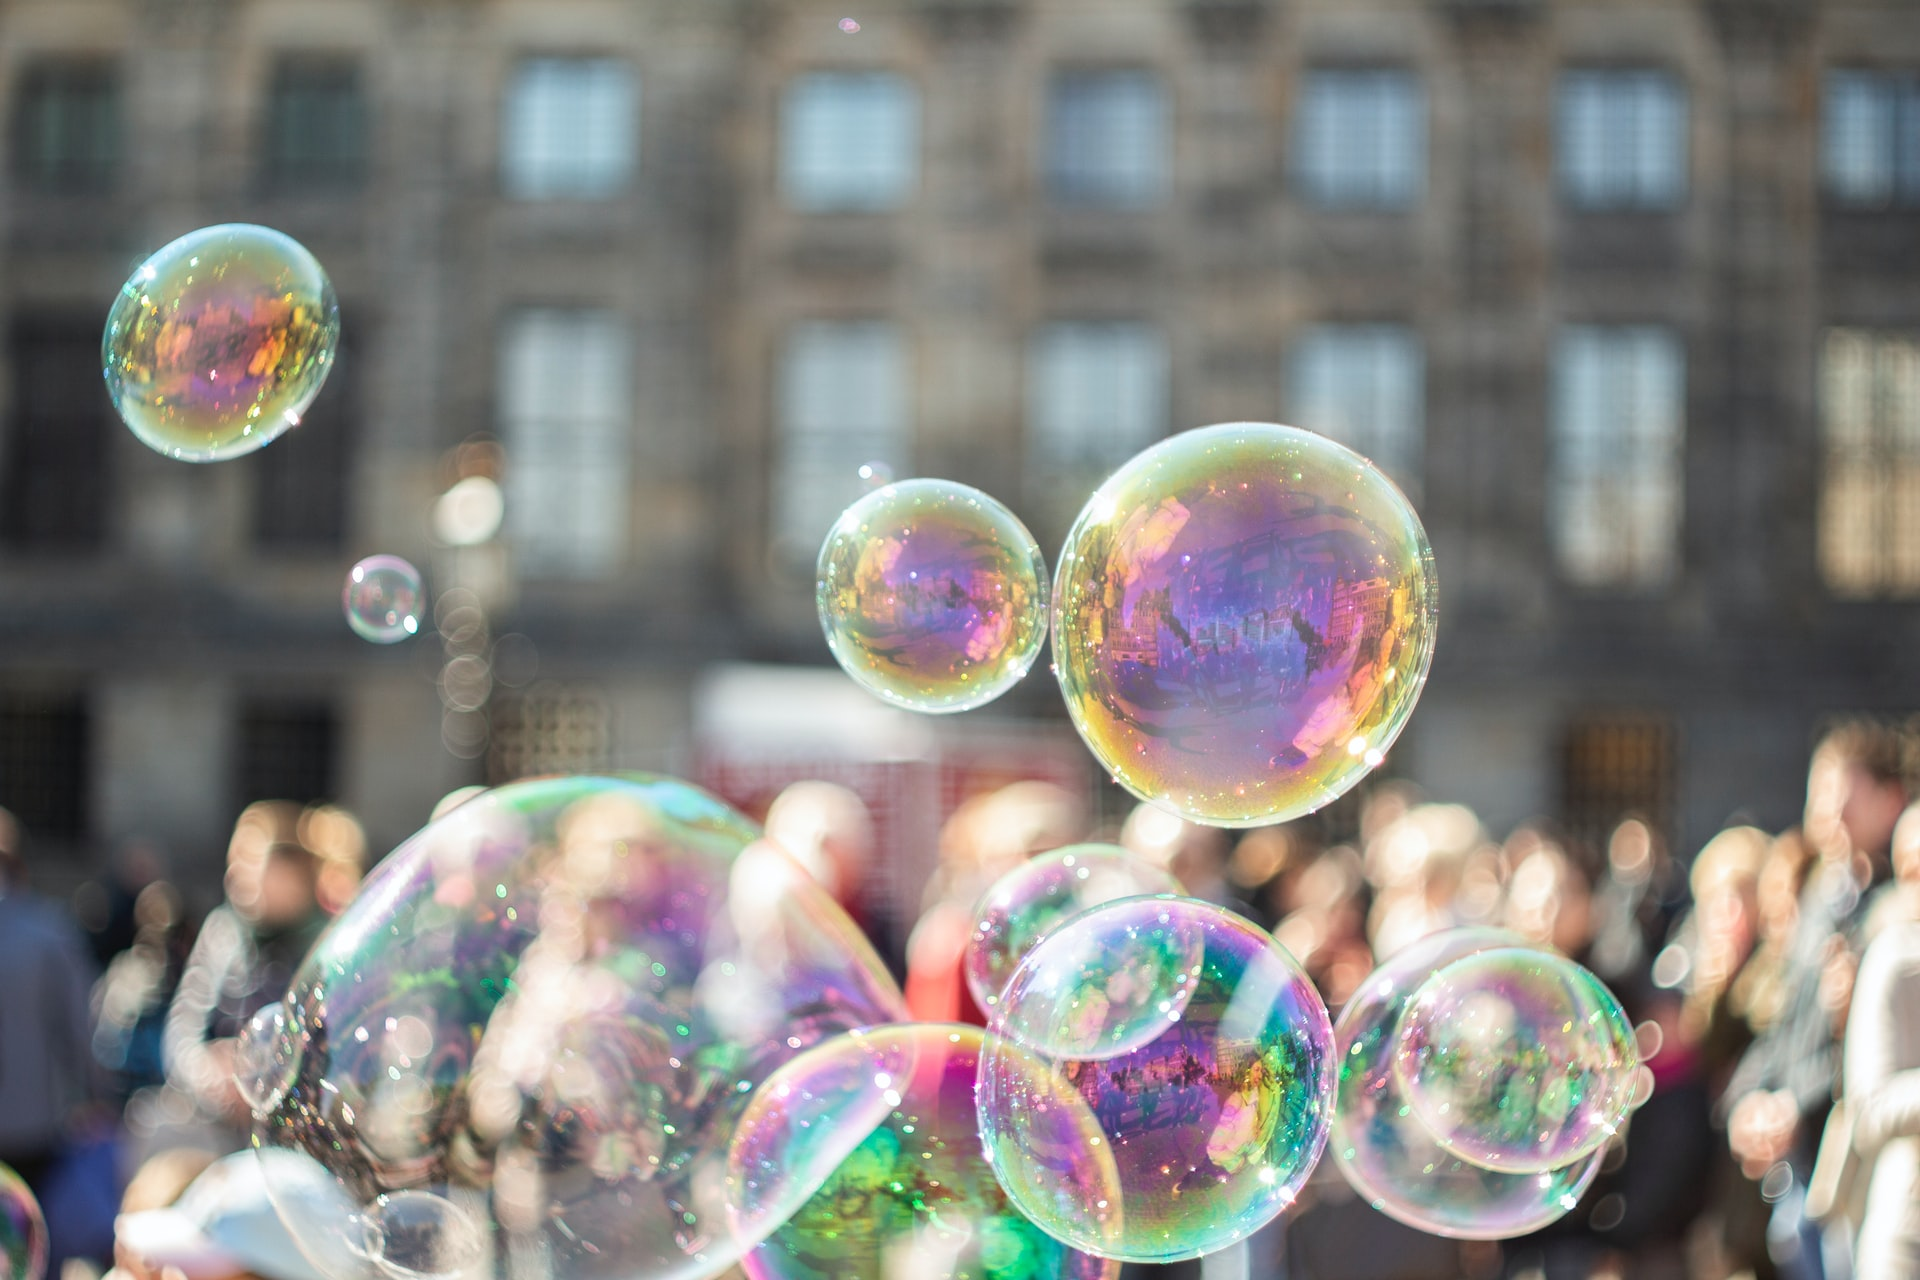 A photograph of bubbles in the foreground, with blurry people and a building in the background.